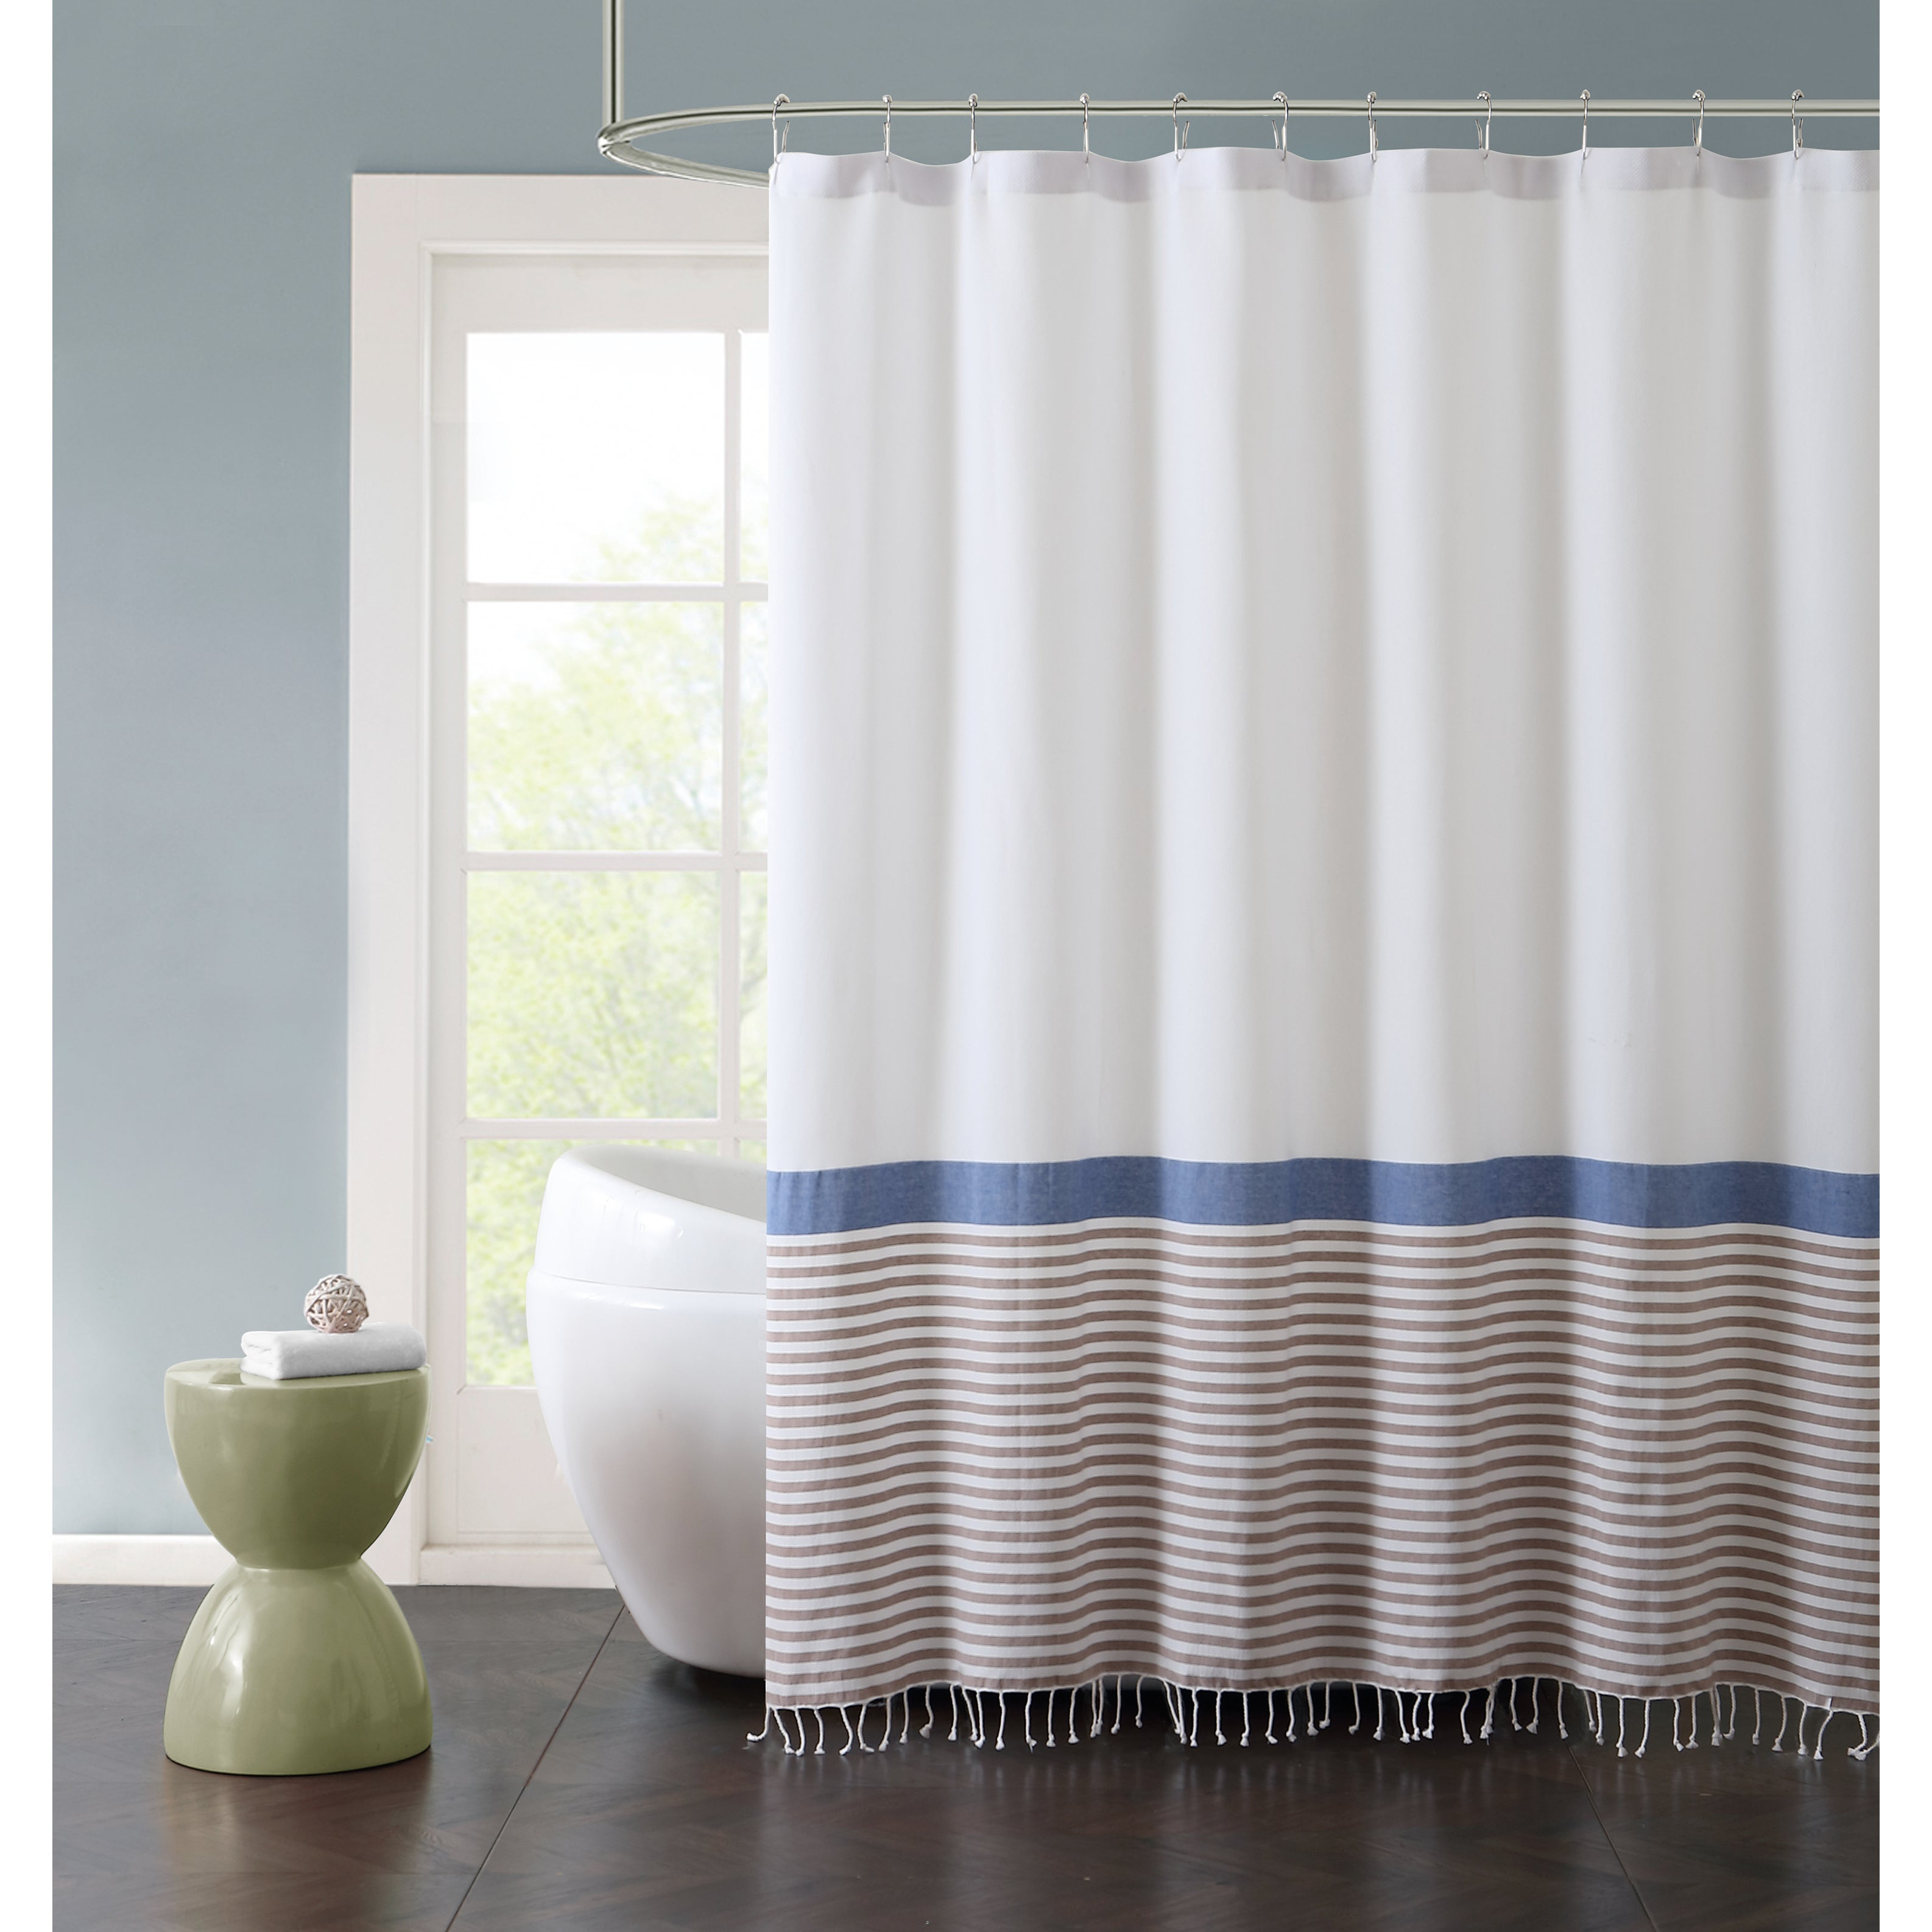 Vcny Home Hugo Striped Fringed Cotton Shower Curtain (Blu...